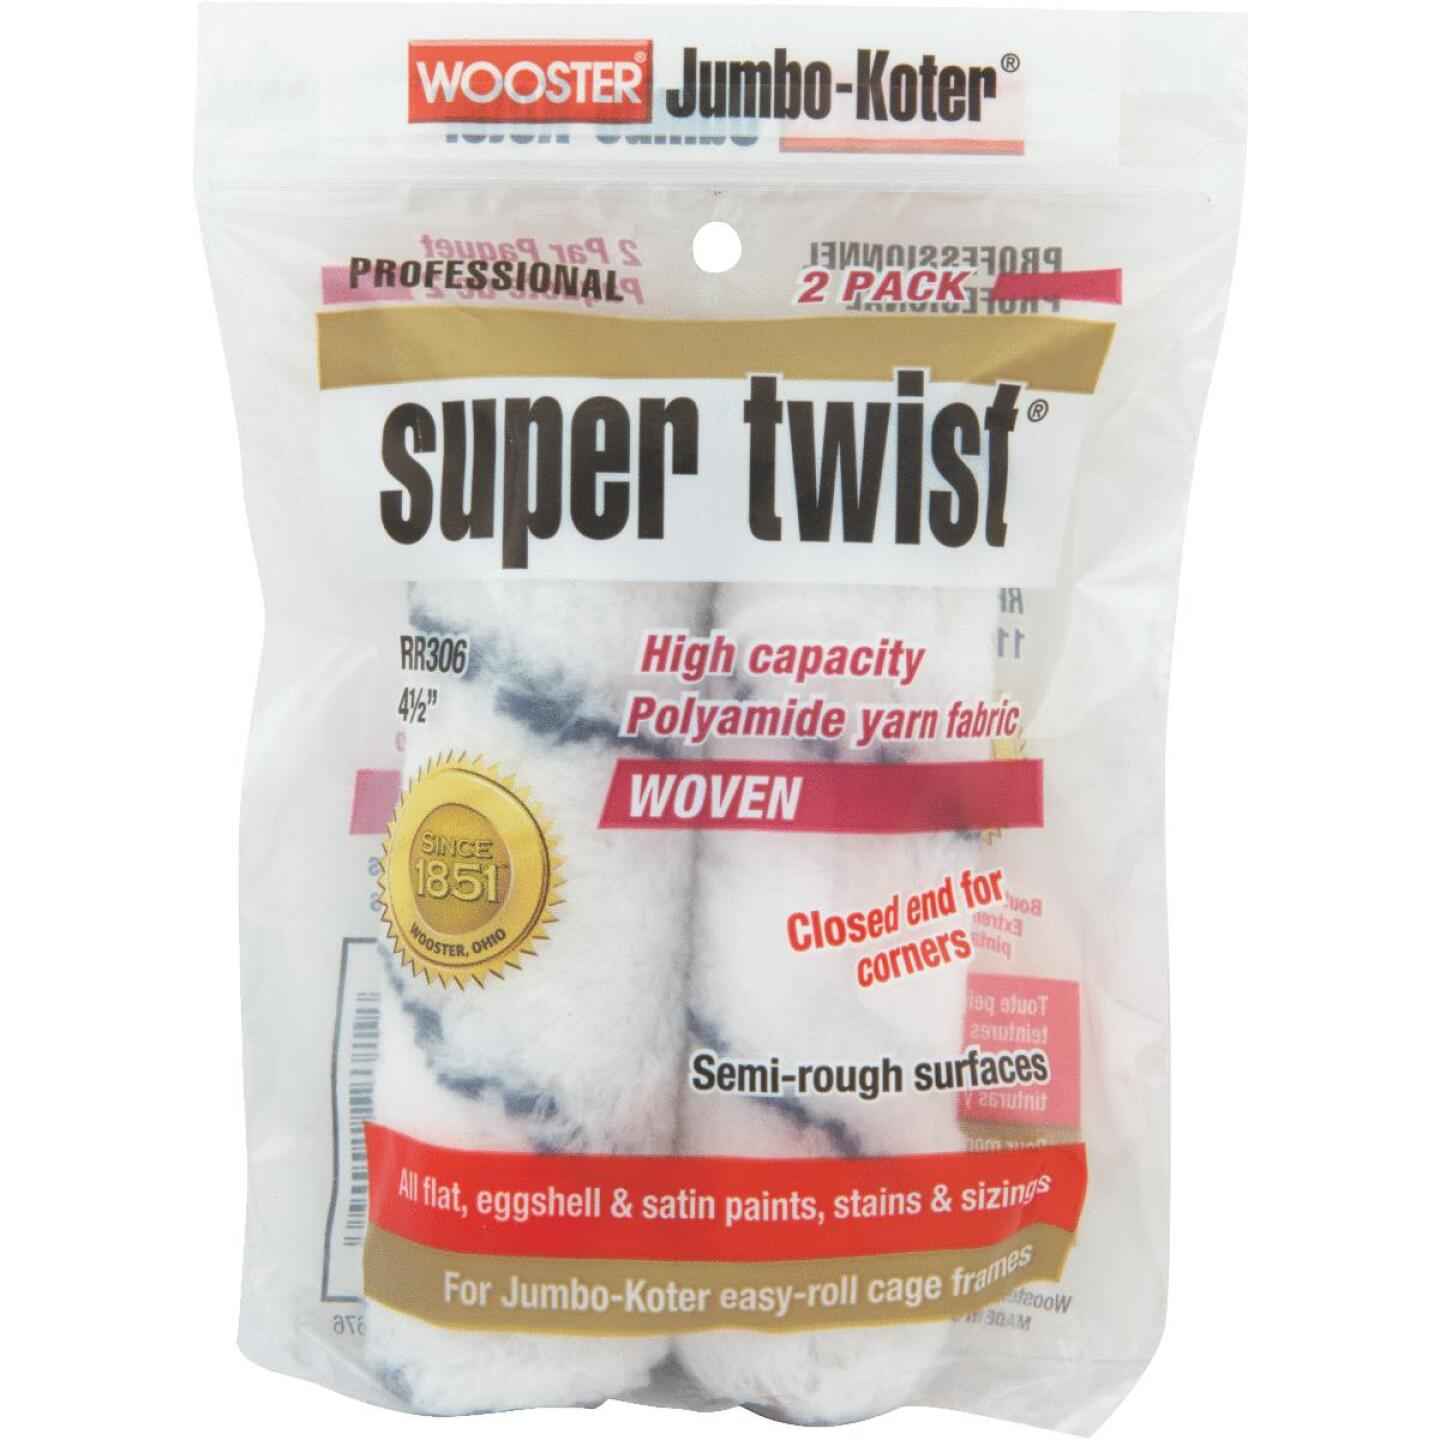 Wooster Jumbo-Koter Super Twist 4-1/2 In. Mini Knit Fabric Roller Cover (2-Pack) Image 1